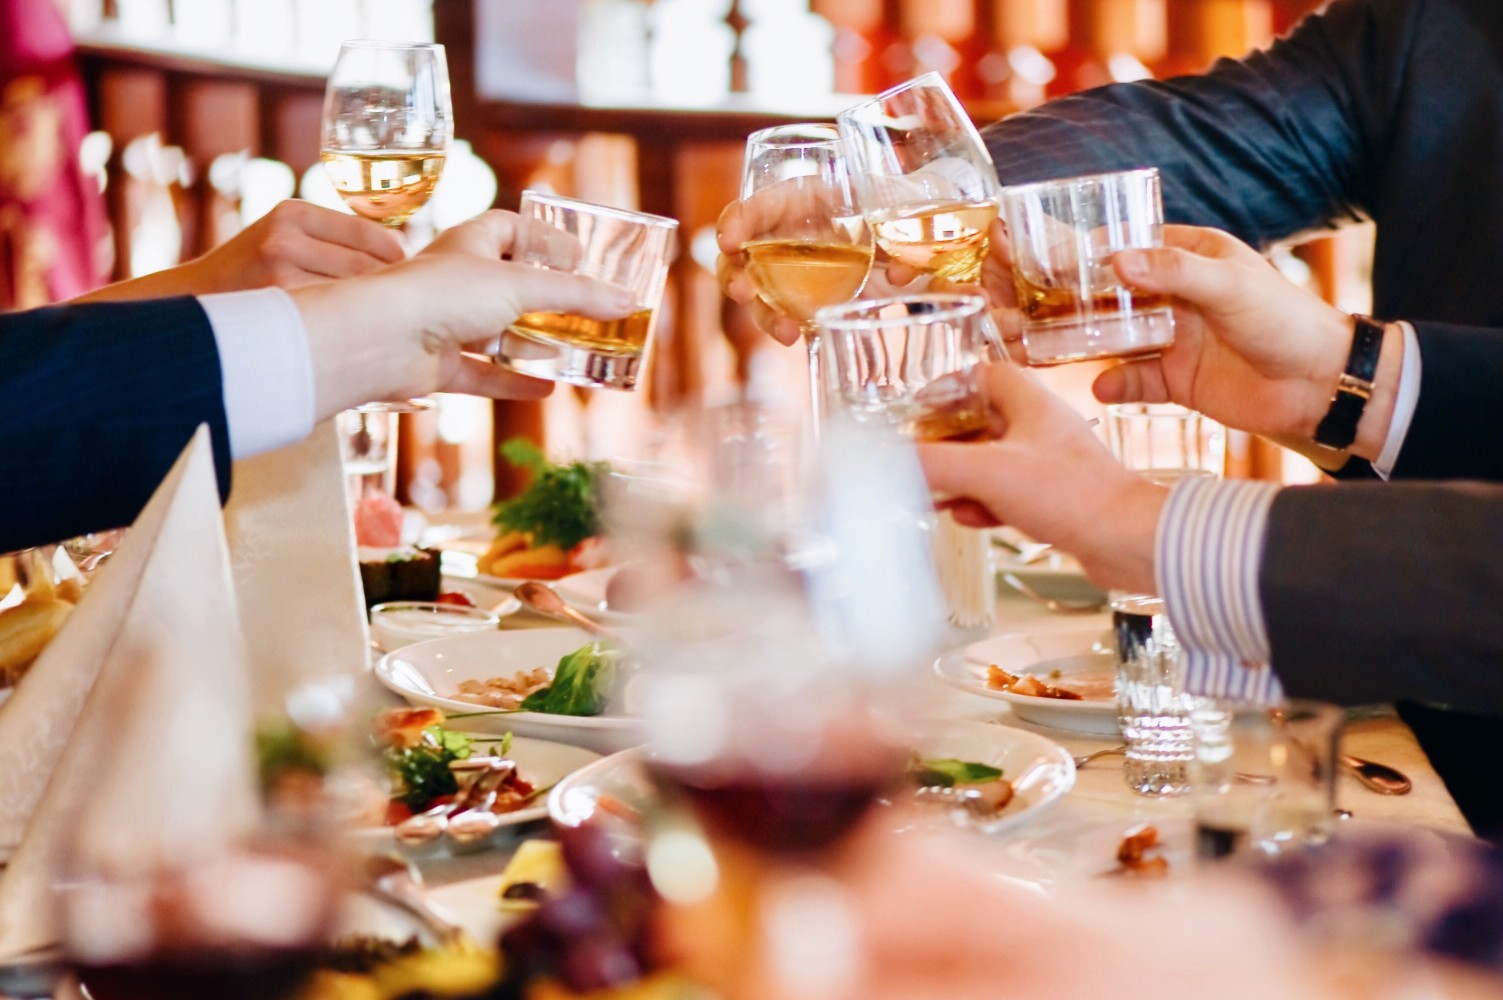 Guests at a wedding reception raising their glasses of whiskey and wine in cheers over a table with food